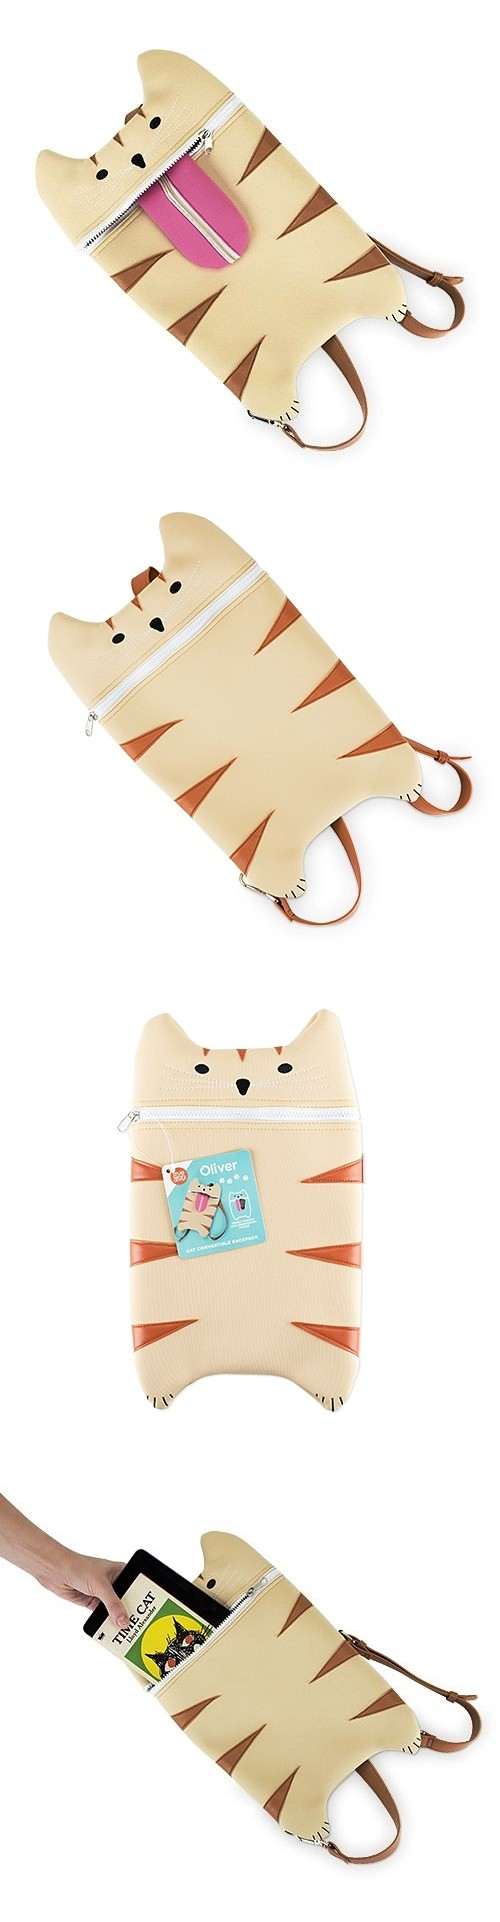 Oliver: Faux-Leather Tabby Cat Bottle Bag Backpack by TrueZOO